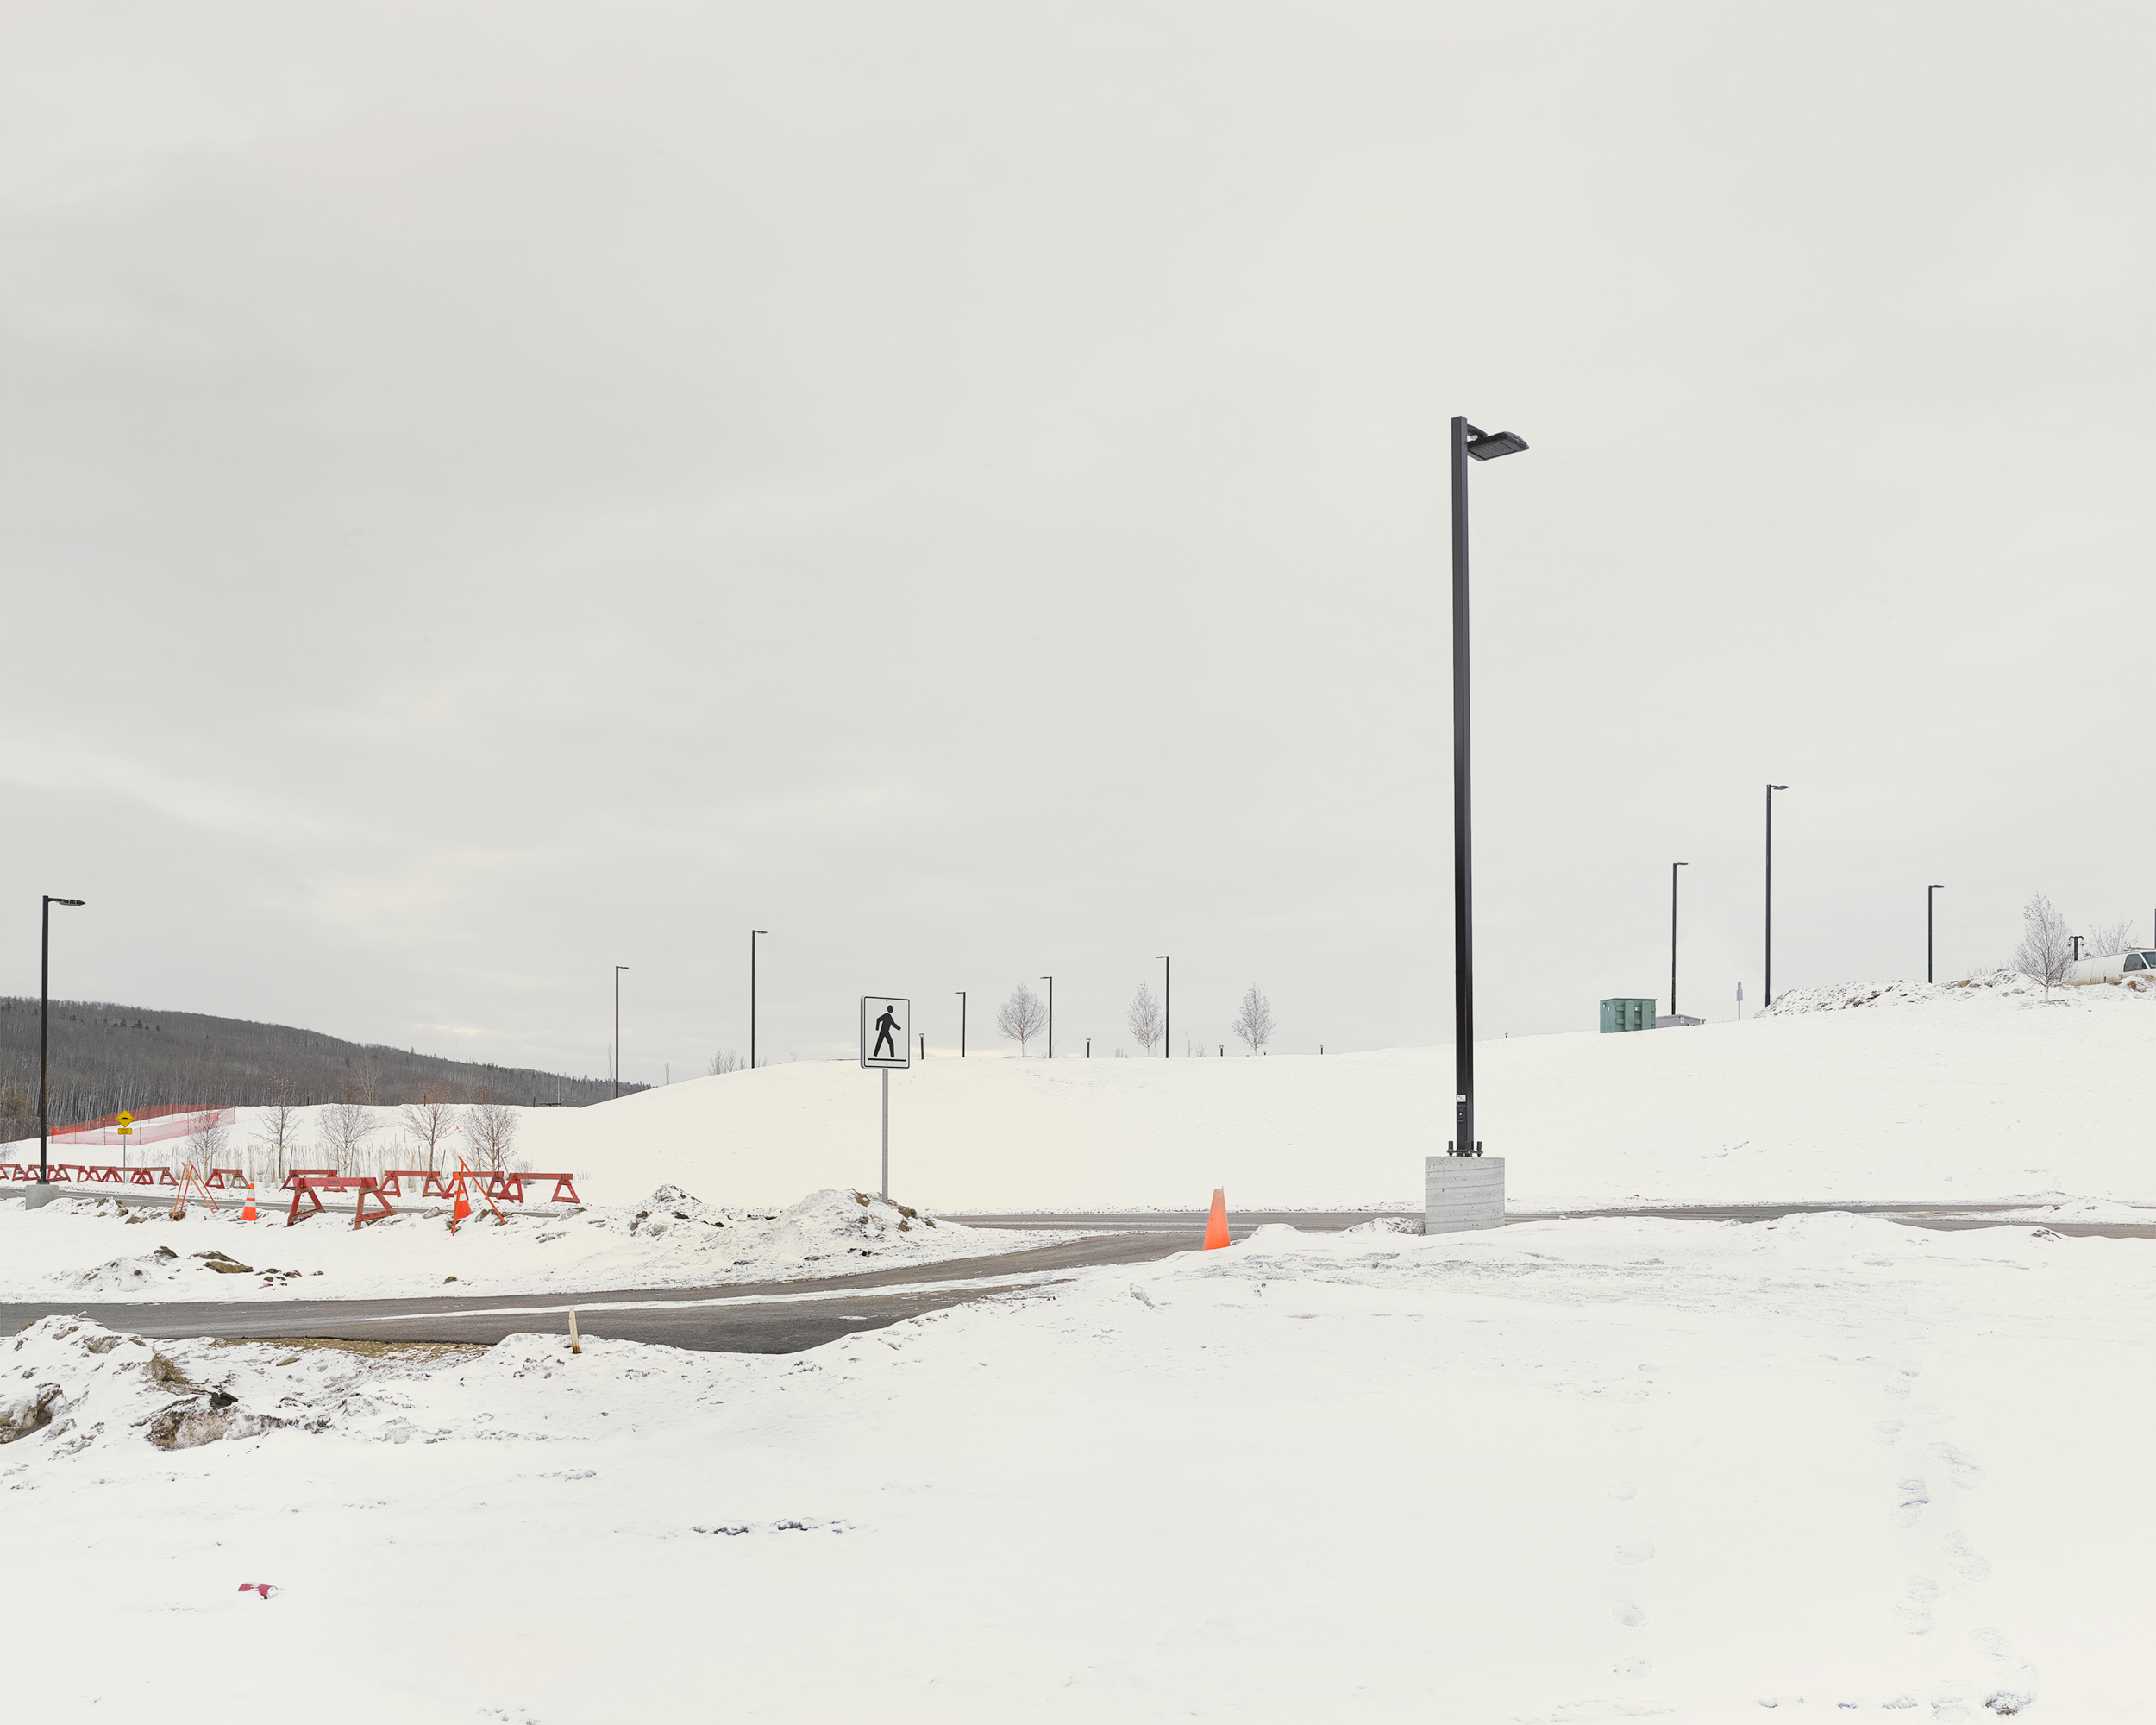 Hardin Road, Fort McMurray, Alberta, Canada, 2017. © Alan McFetridge